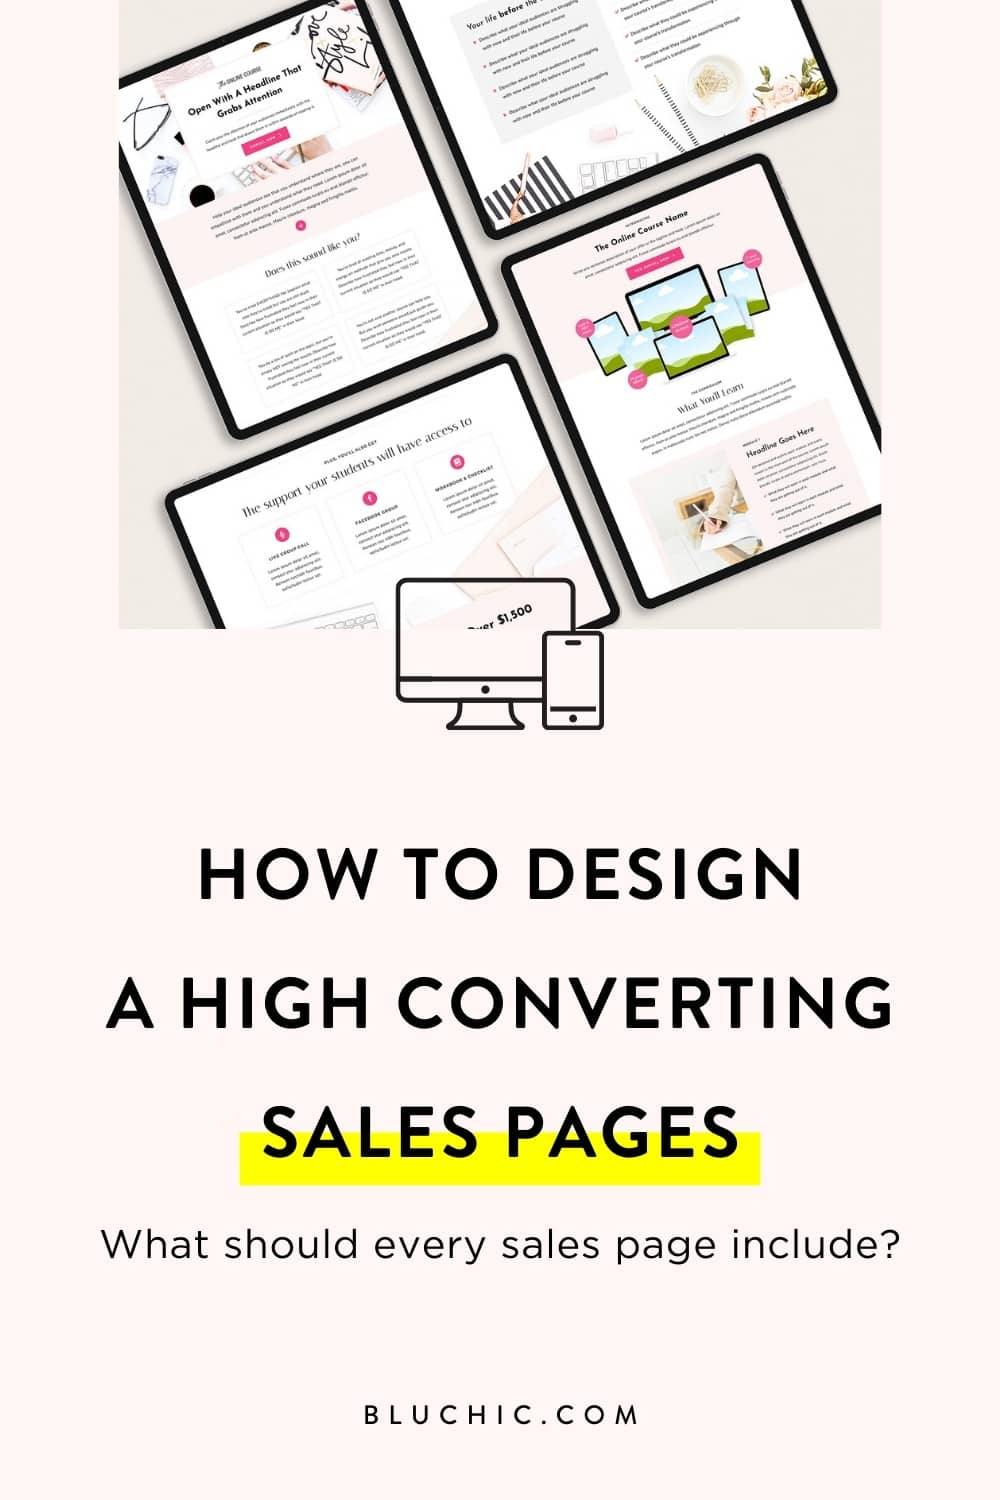 We're sharing how to design high converting sales pages so you'll feel confident in creating a sales page for your business. Free checklist included!